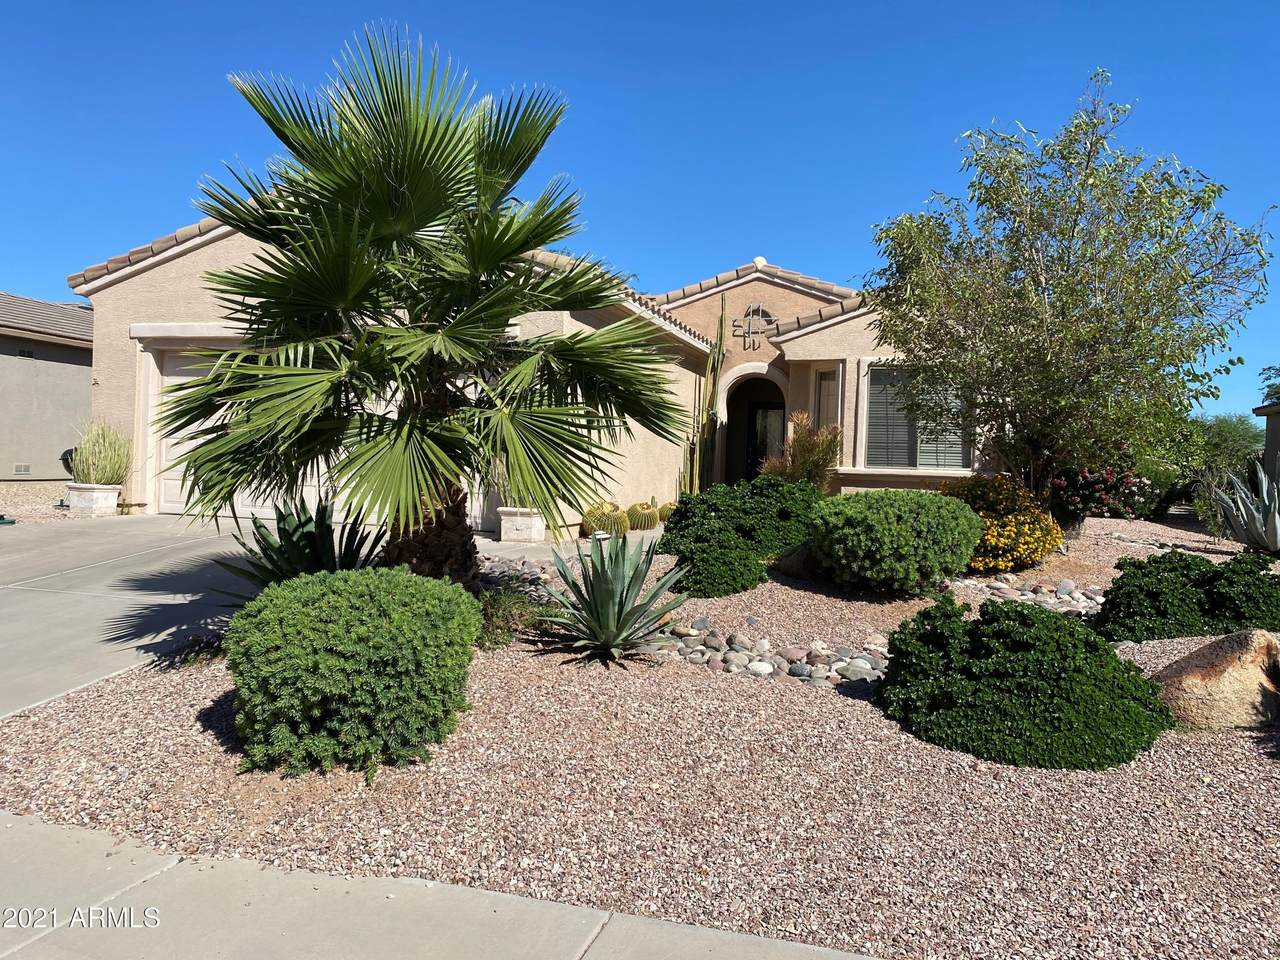 19250 Mohave Sage Way - Photo 1